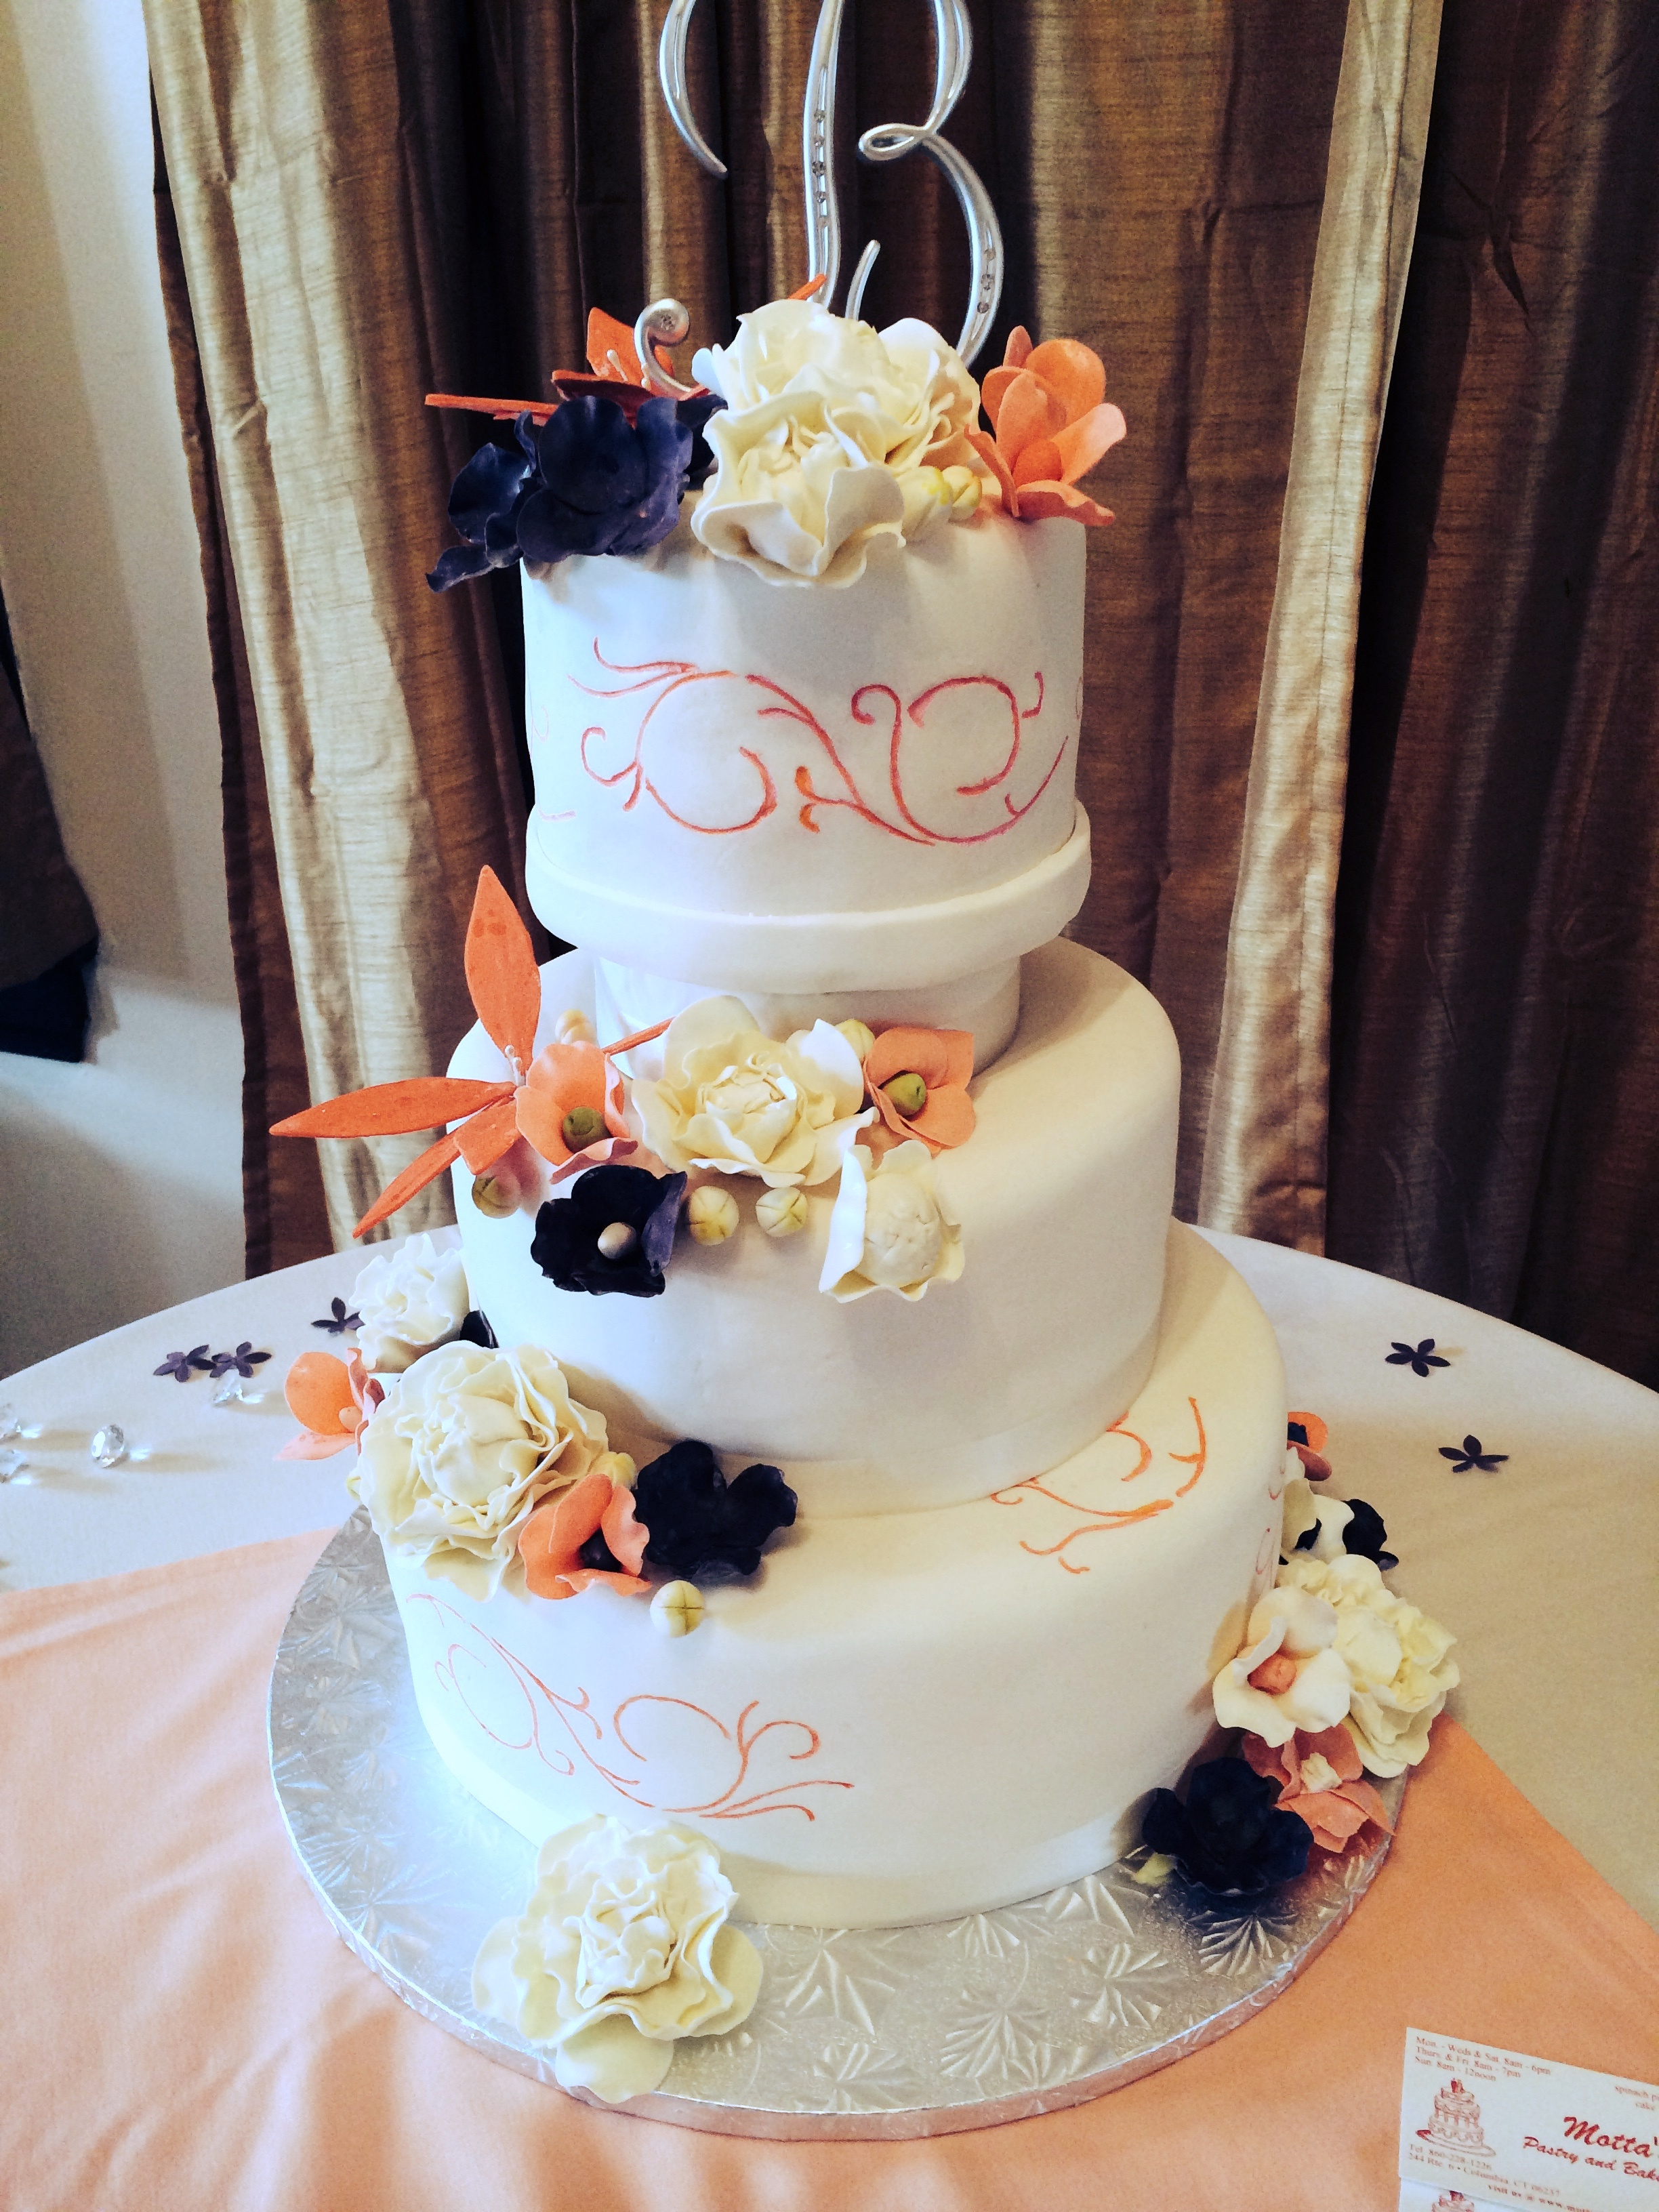 Wedding Cake Orange Flowers.jpg